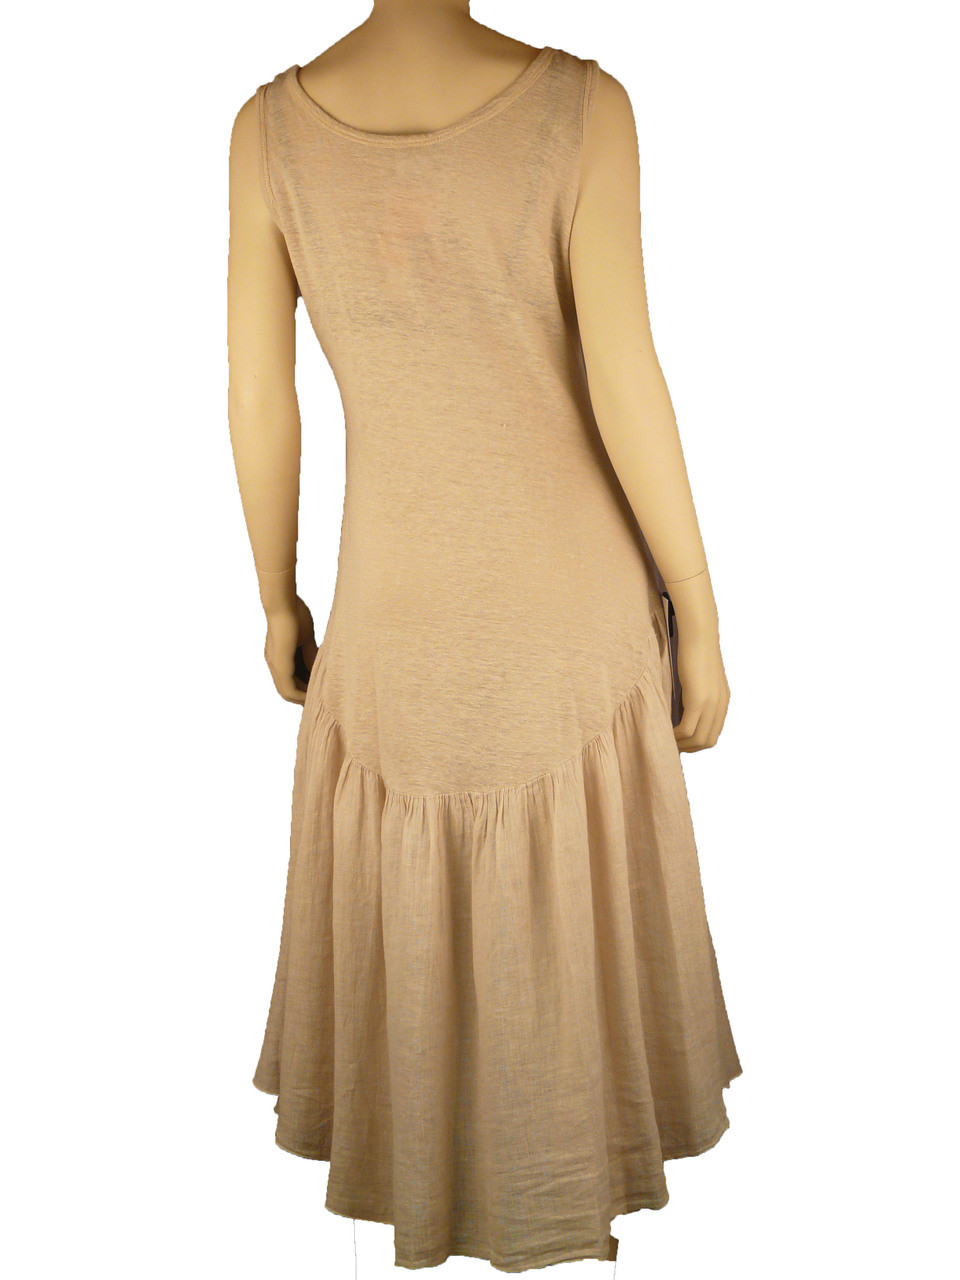 Color Me Cotton CMC Cool & Chic Linen Dress in Sand Beige CLEARANCE PRICE